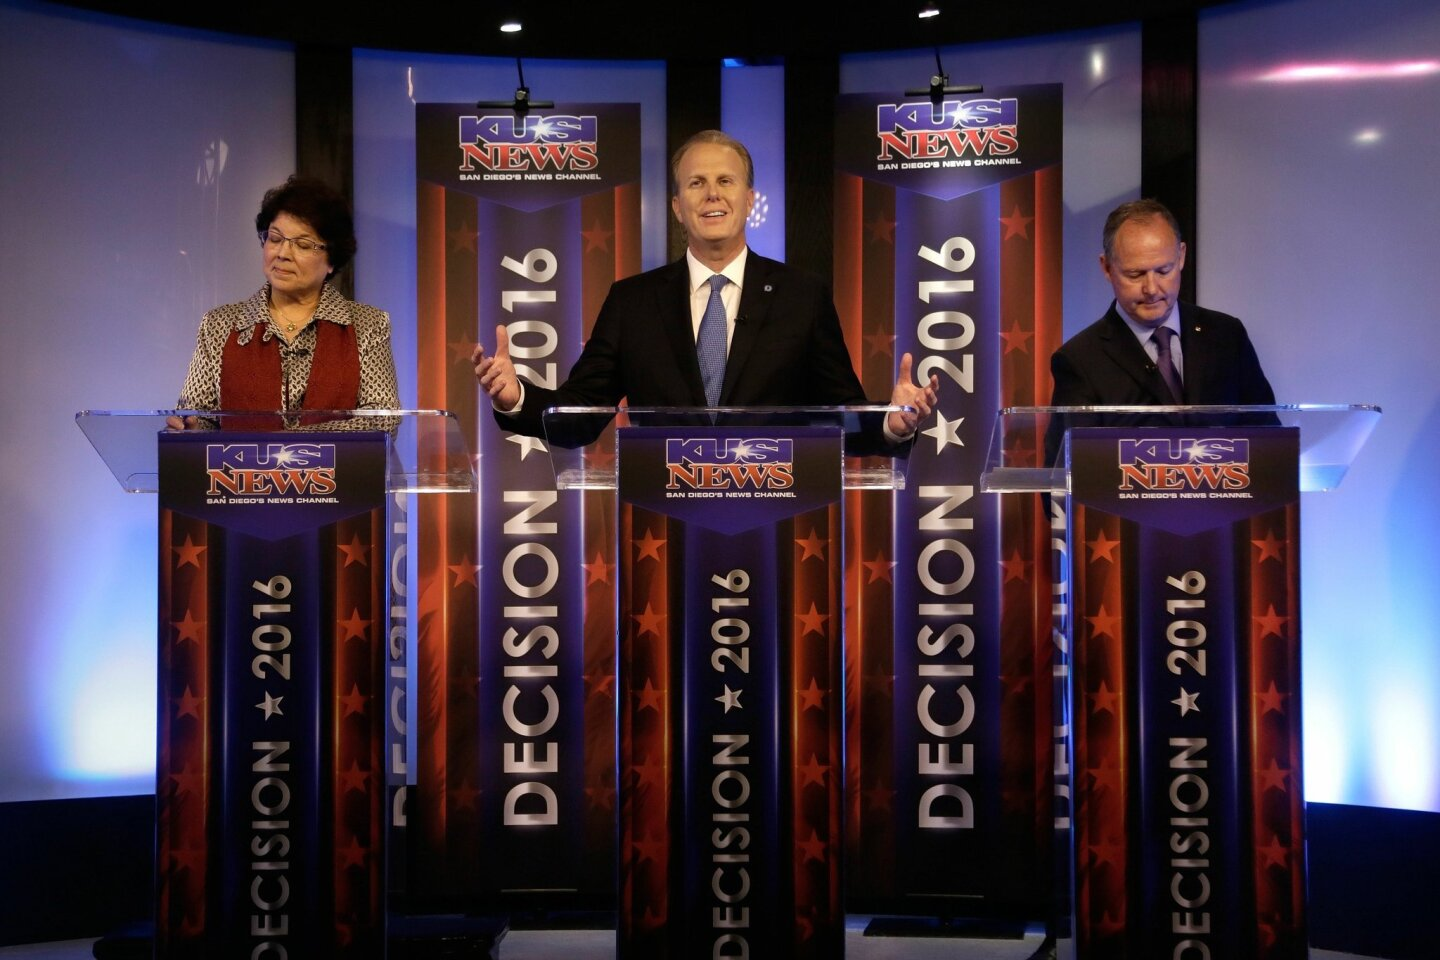 From left to right, San Diego Mayoral candidates Lori Saldaña, Kevin Faulconer, and Ed Harris participate in a mayoral debate on KUSI Tuesday night.